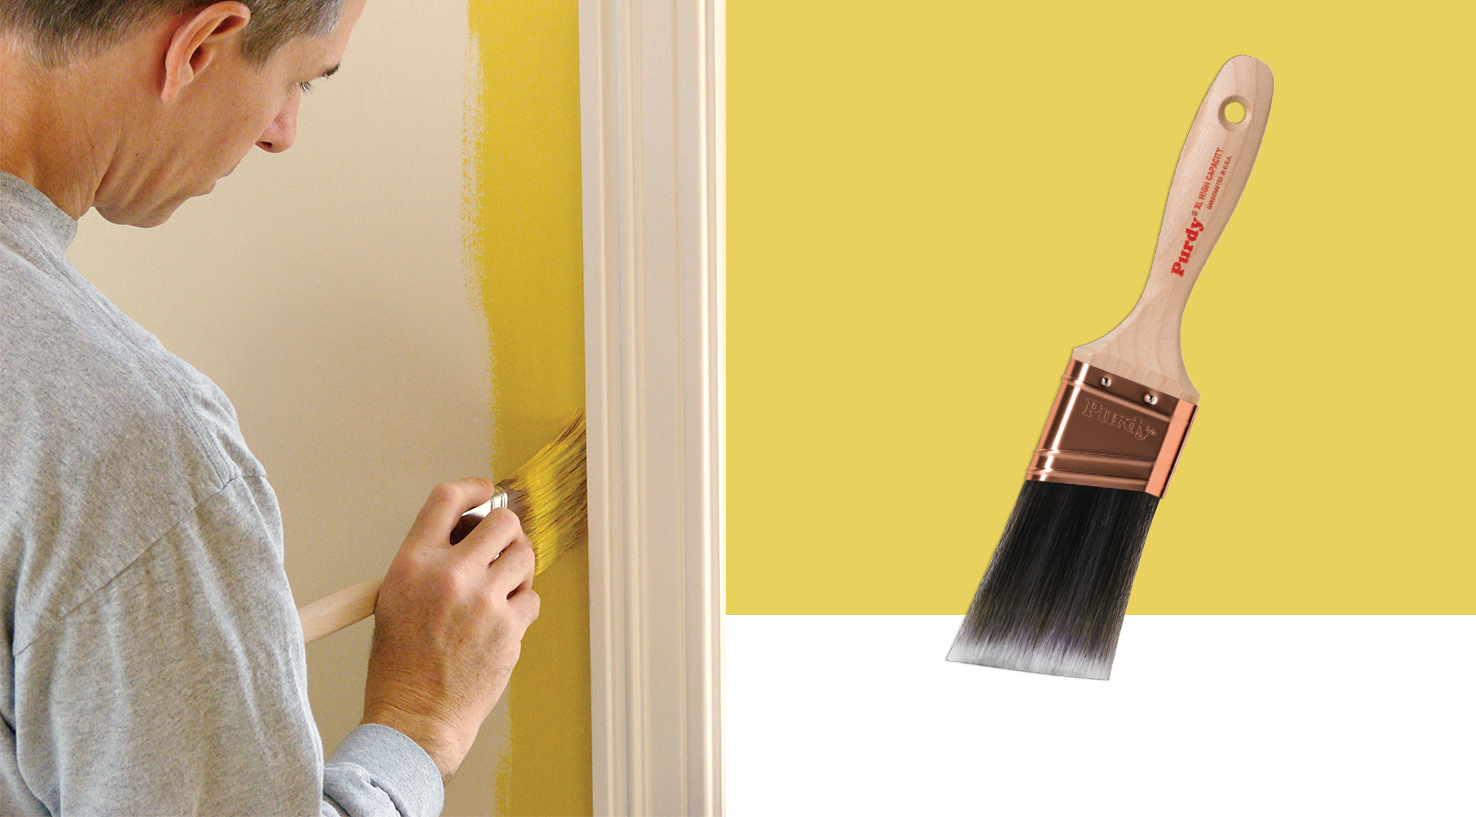 5 Tips for Selecting the Right Brush for the Job